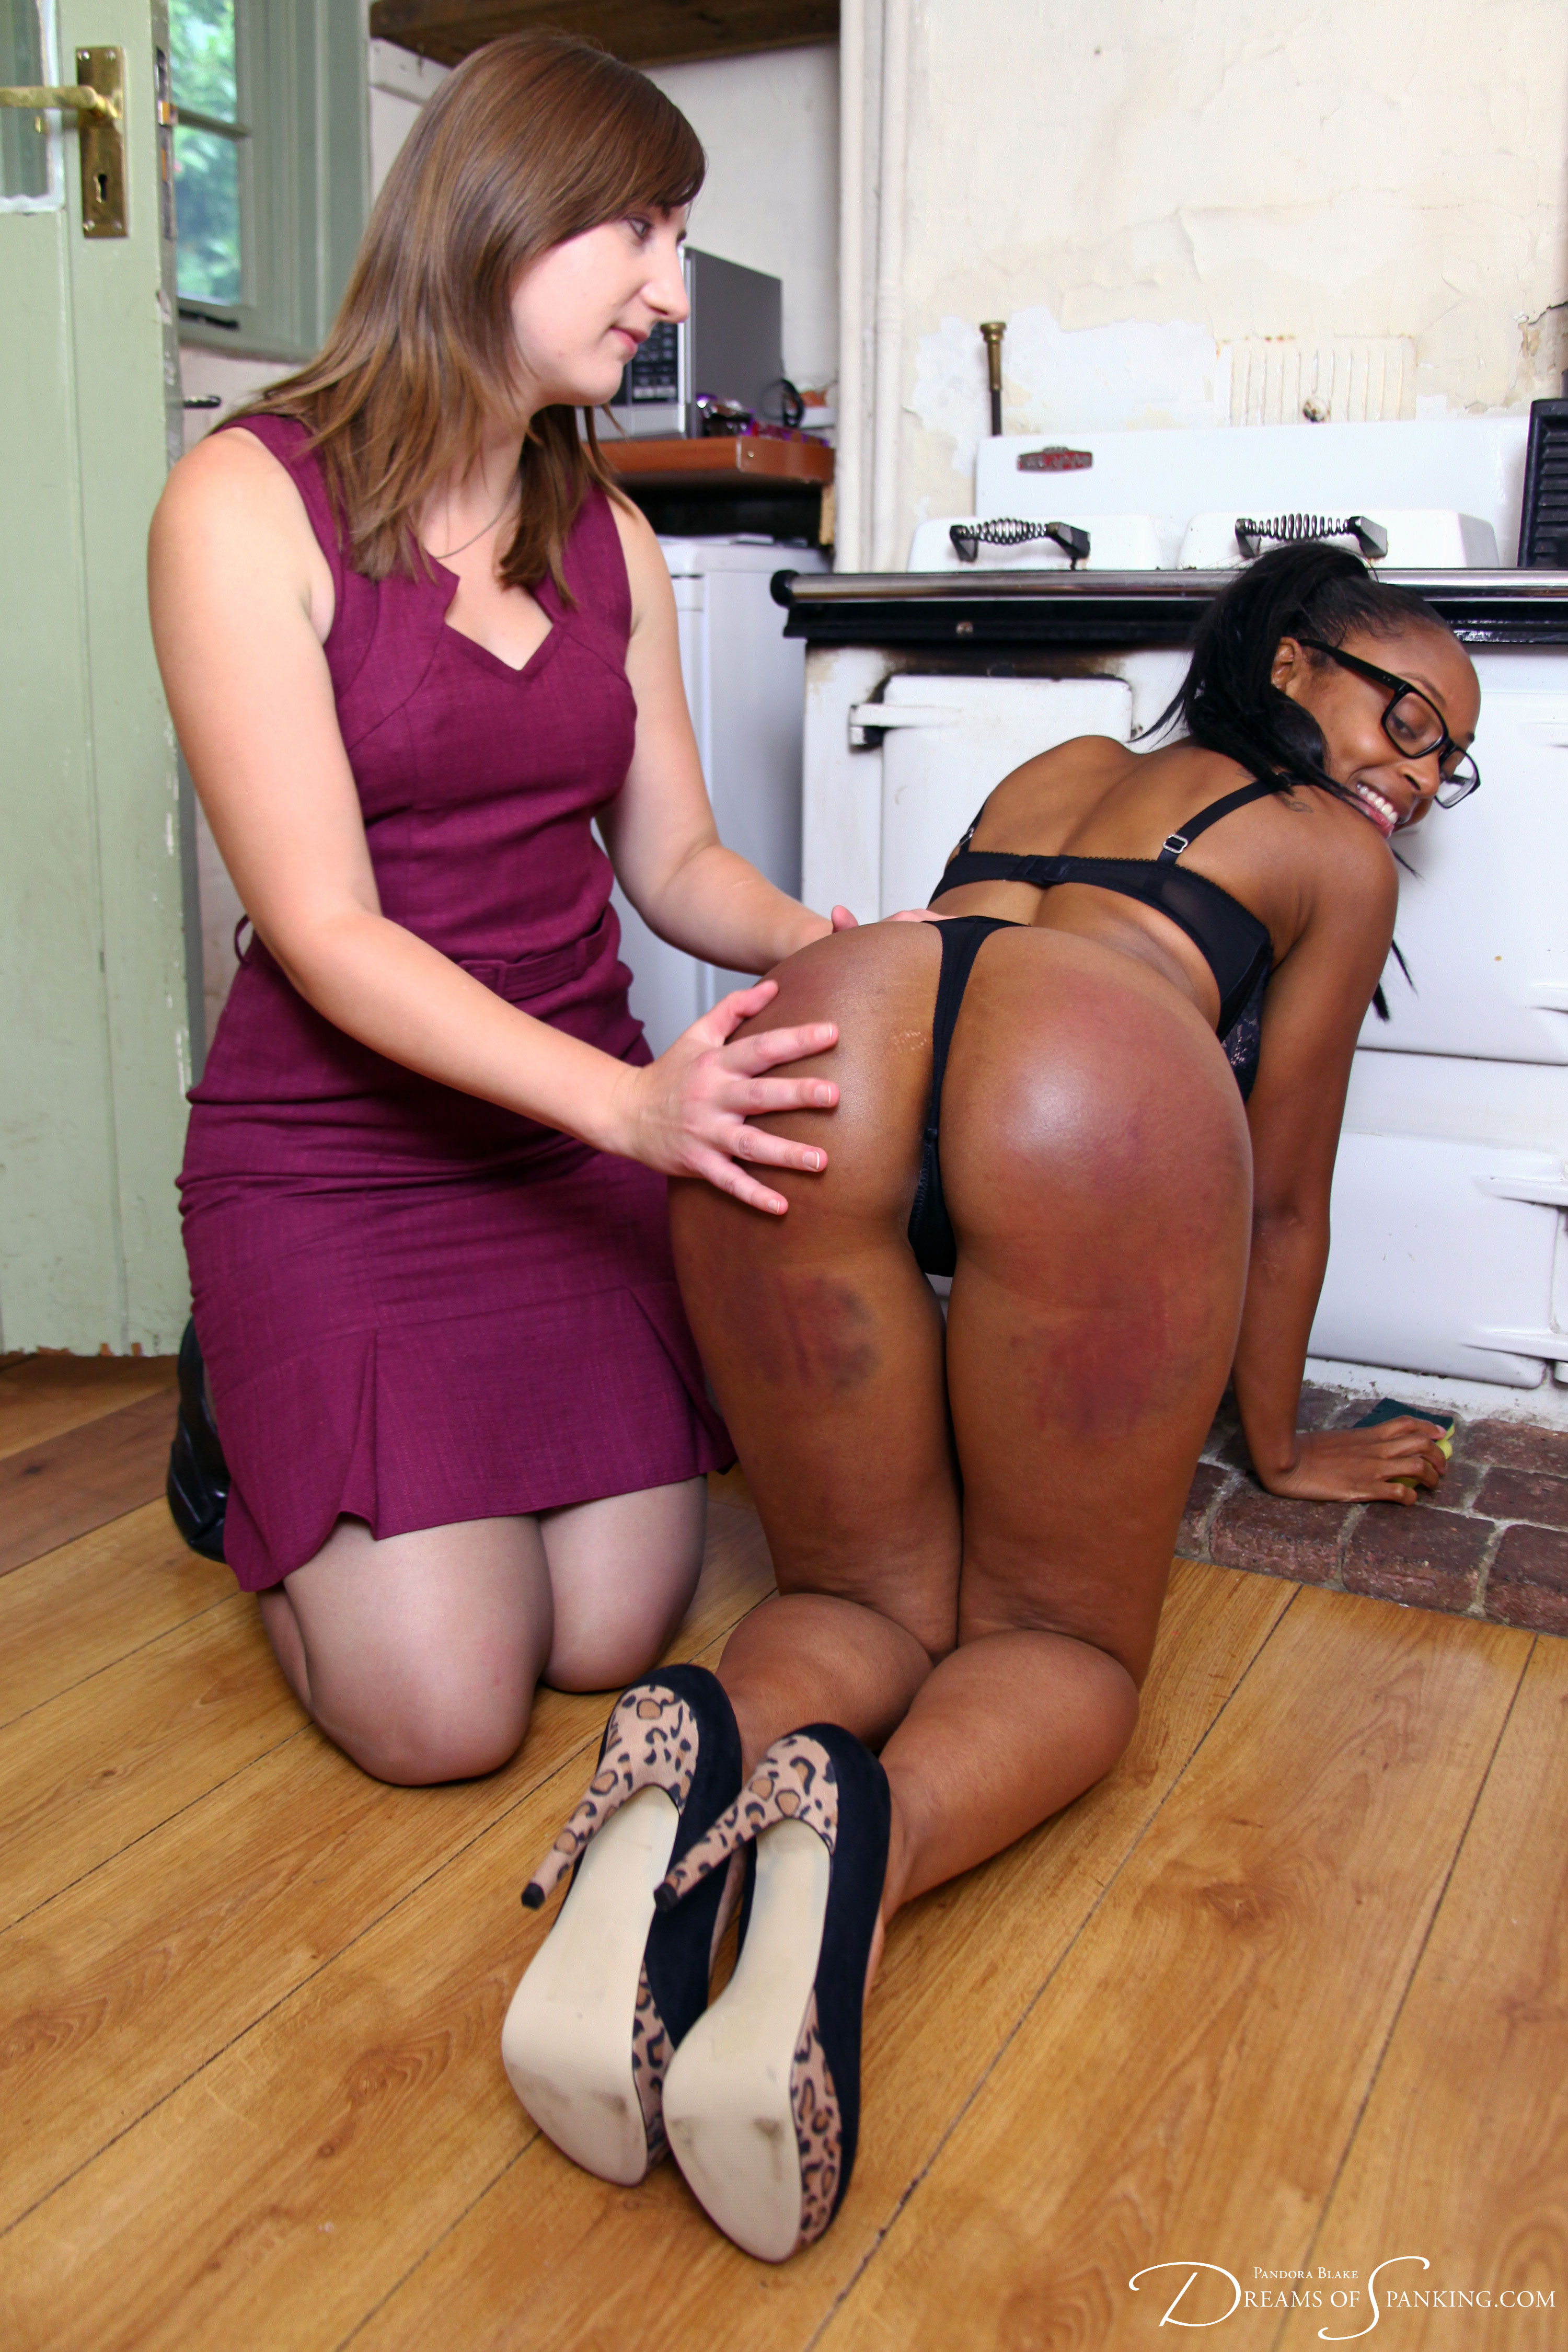 Lola Marie gets spanked in sexy lingerie at Dreams of Spanking